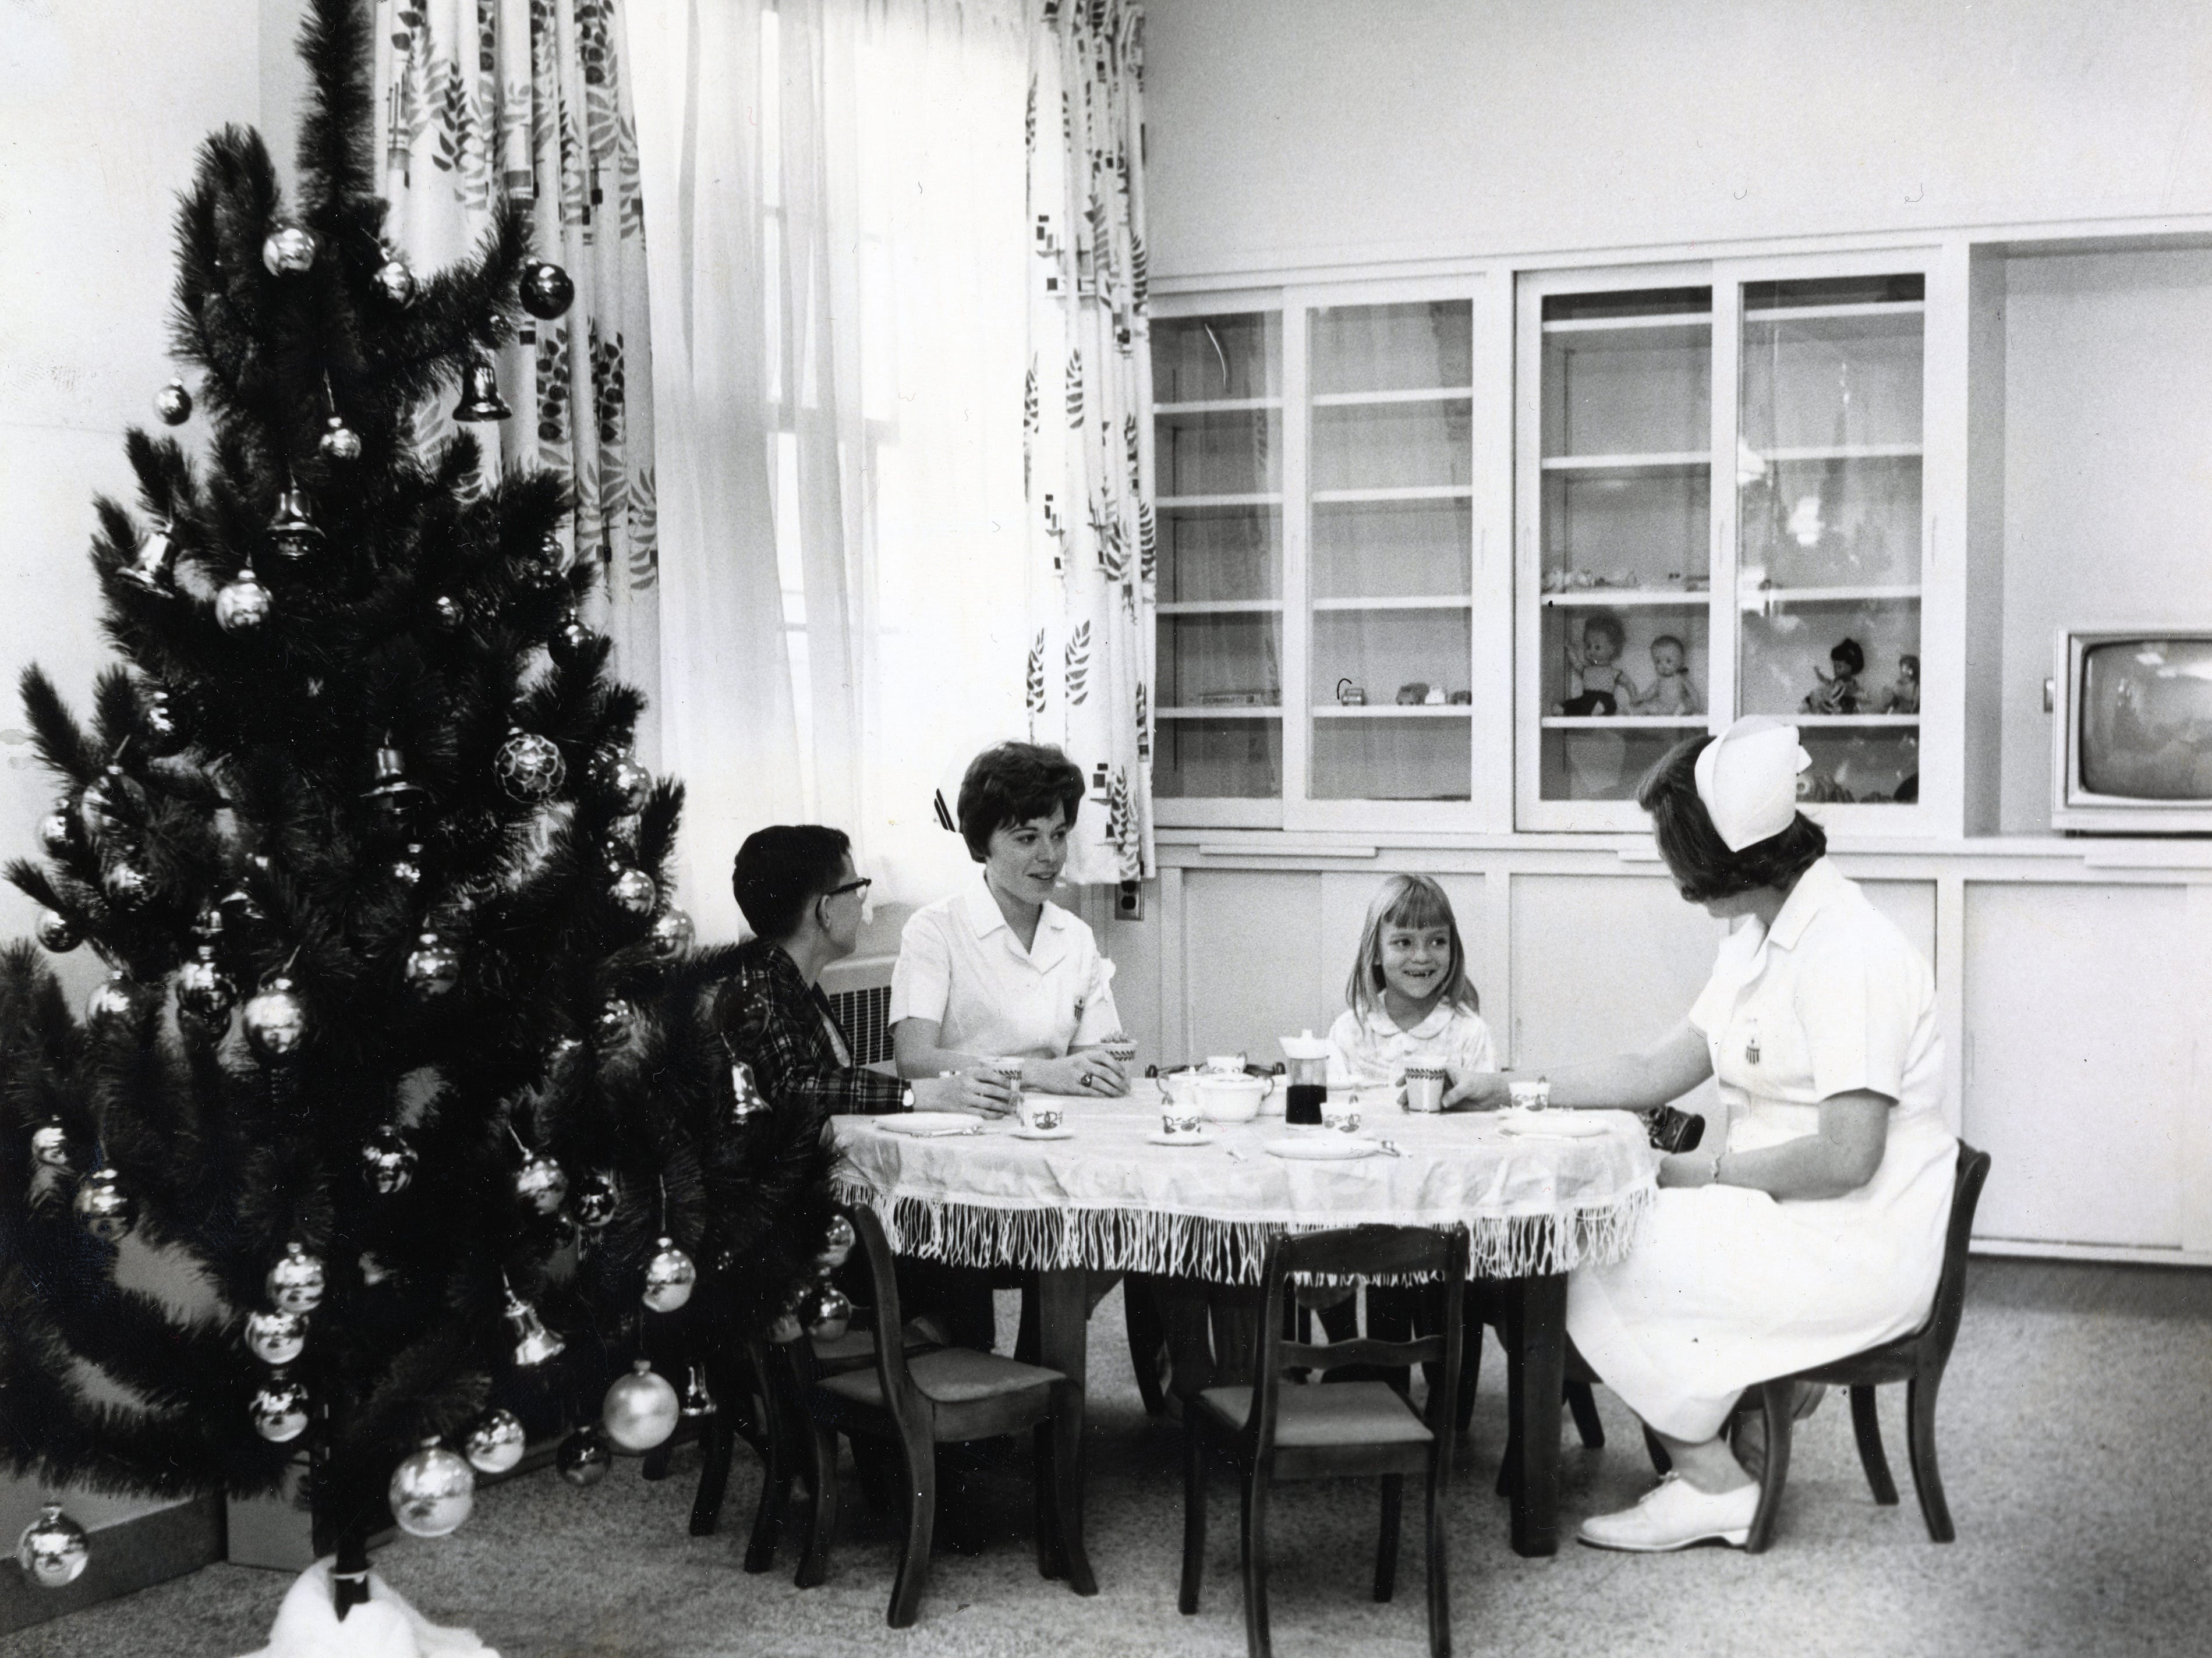 From left to right, Dan Hill, Mary Gail Jamieson, Lisa Kirby and Brenda Anderson at St. Mary's Medical Center's pediatric care unit in December 1966.